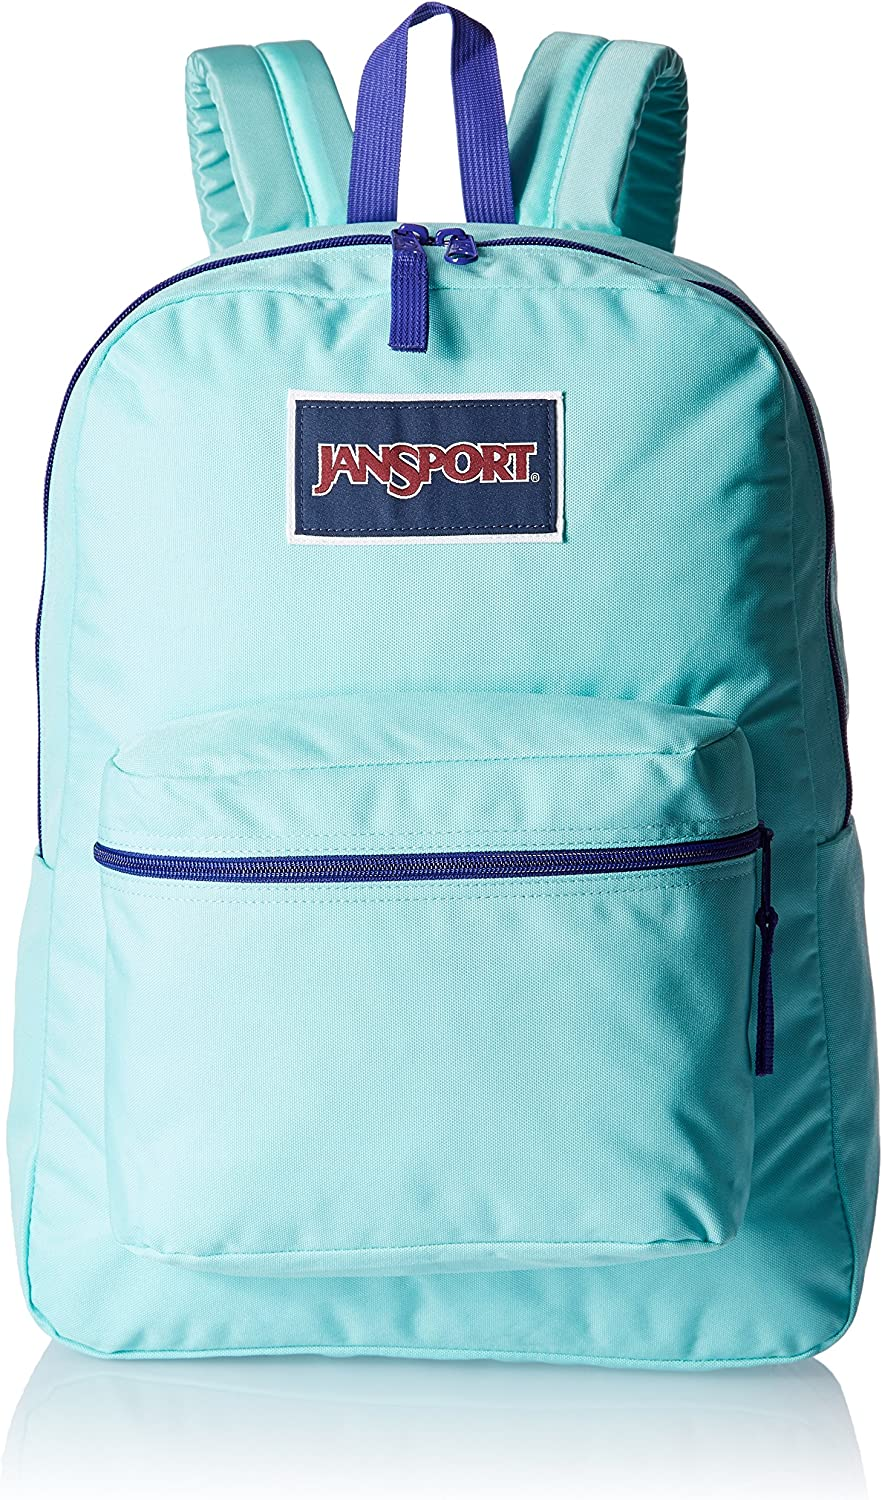 "JanSport Womens Classic Mainstream Overexposed Backpack - Aqua Dash/Violet Purple / 16.7""H X 13""W X 8.5""D"